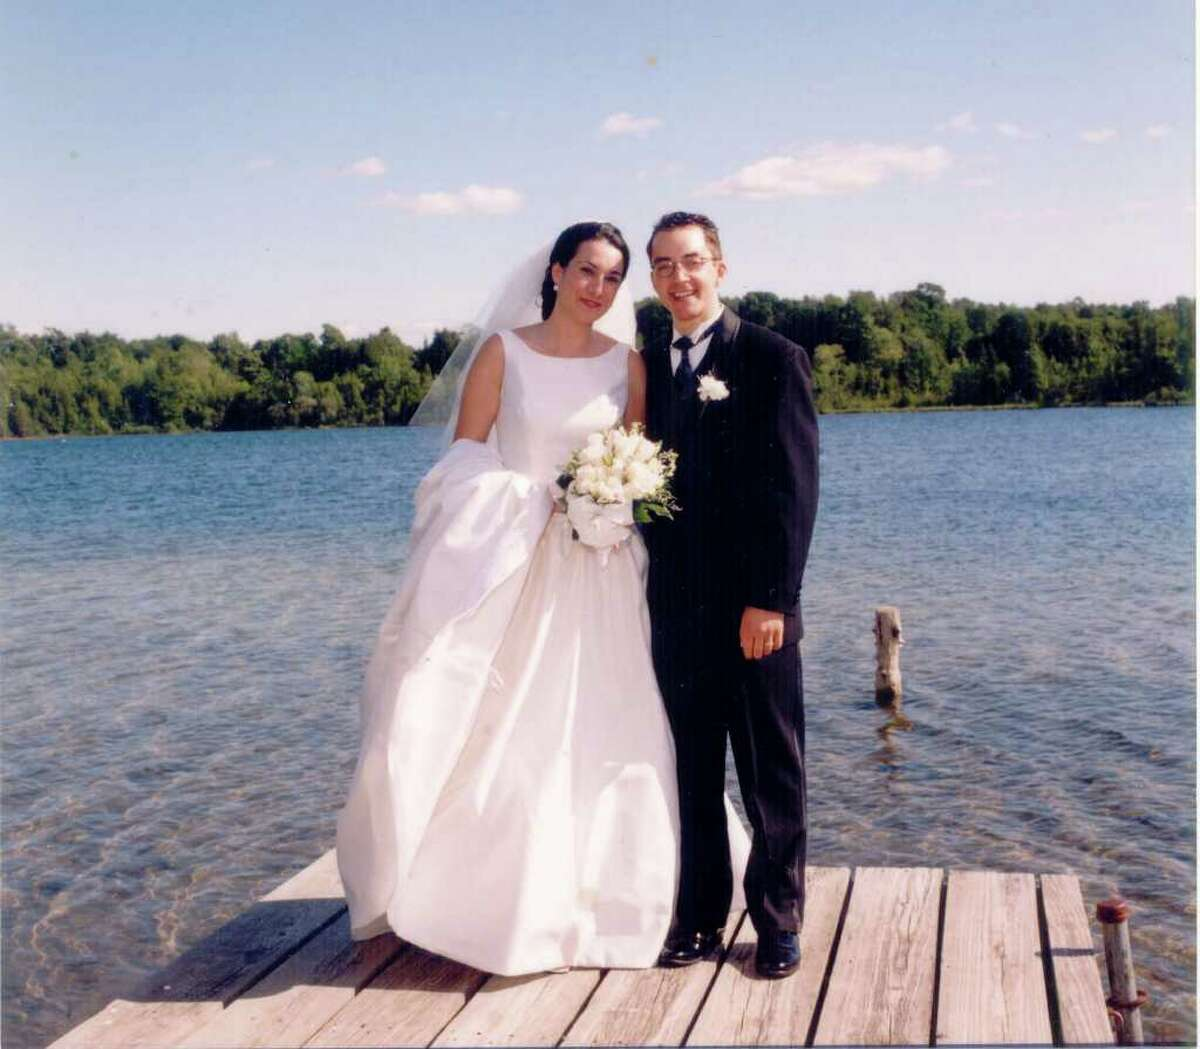 Laura Schiavi and Andrew Walshak were married June 6, 1998, after Andrew finished medical school but before he began his residency in emergency medicine at Yale New Haven Hospital.